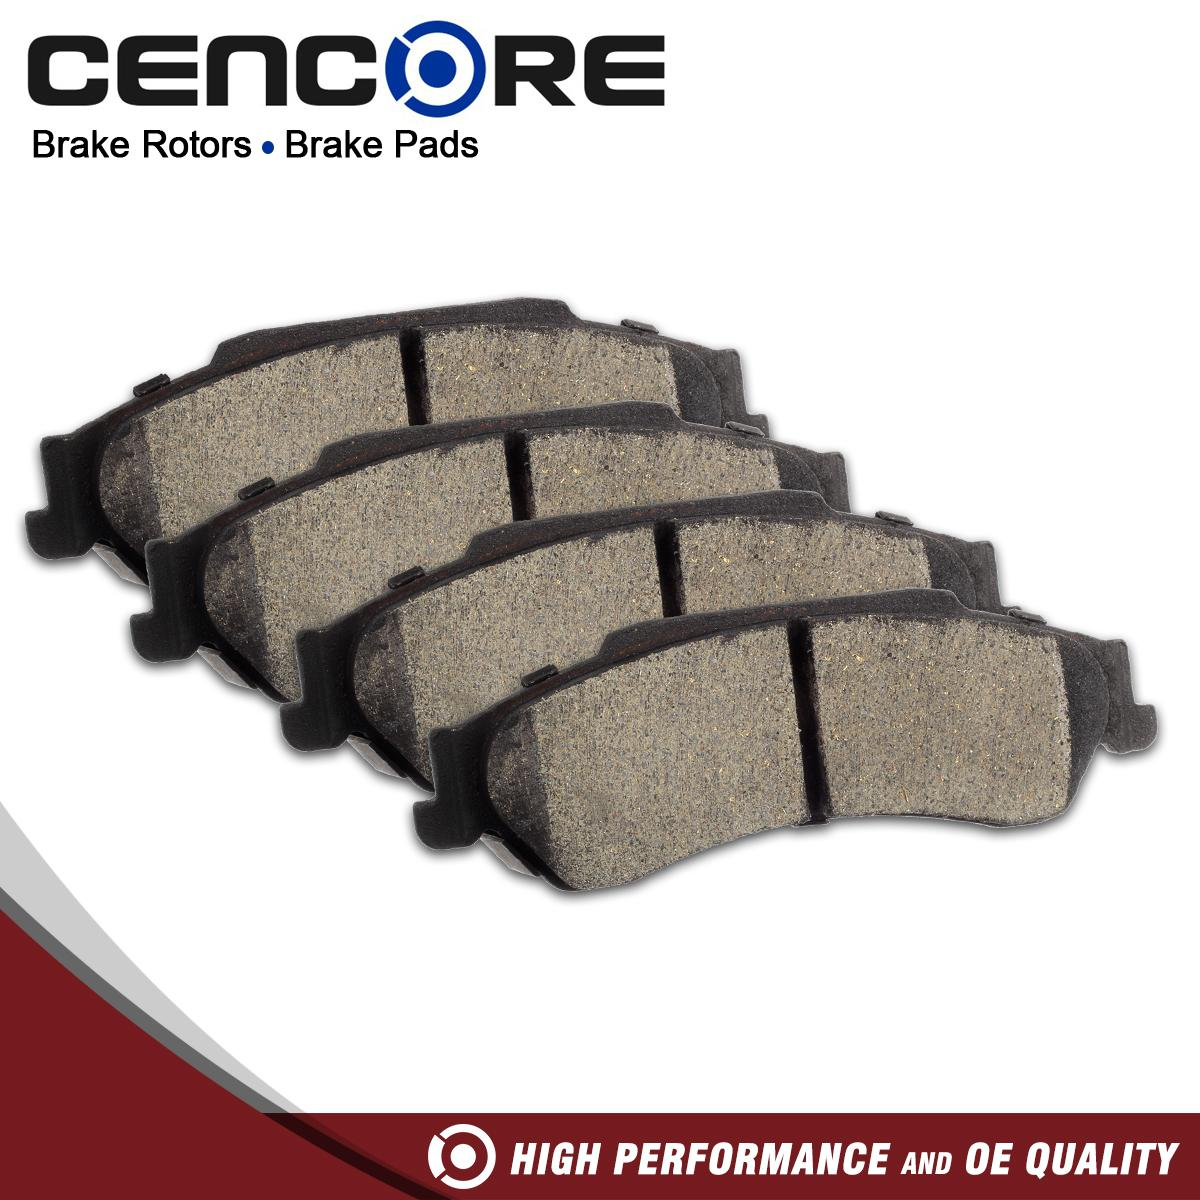 hight resolution of details about 4pcs rear ceramic brake pads for chevy s10 blazer pickup fits gmc envoy